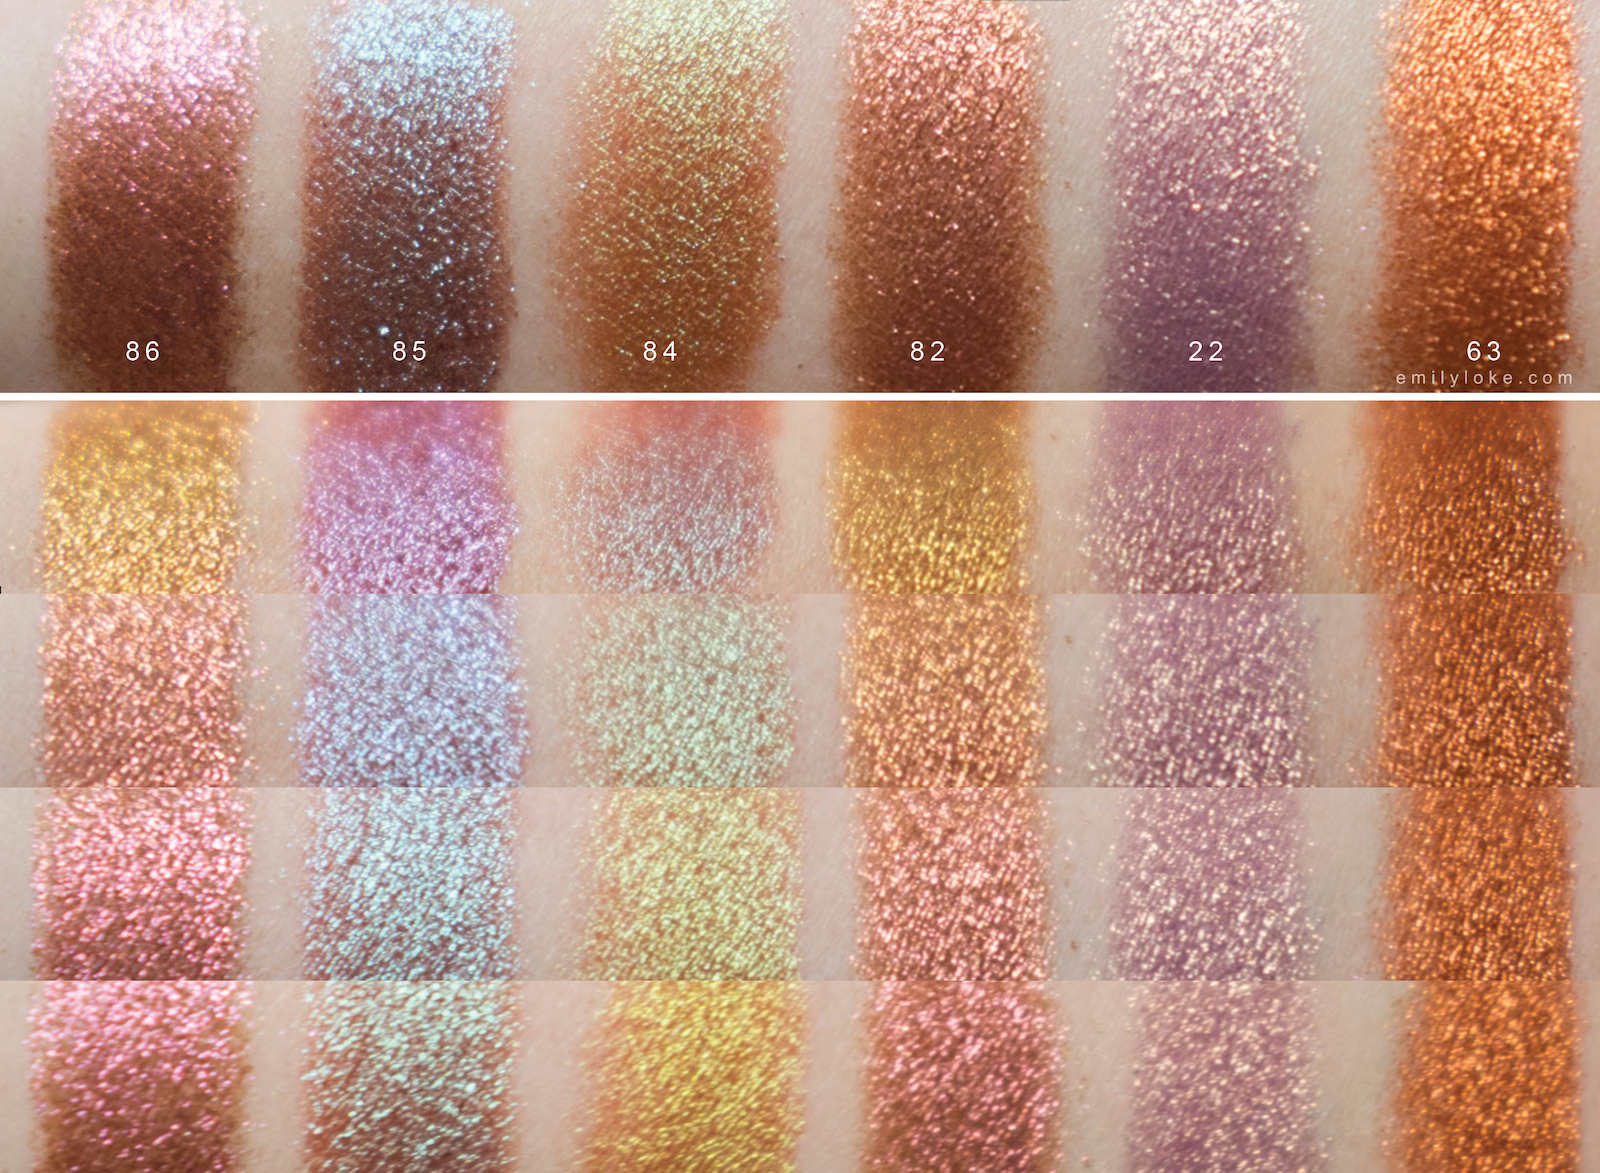 Inglot pigment duochrome swatches